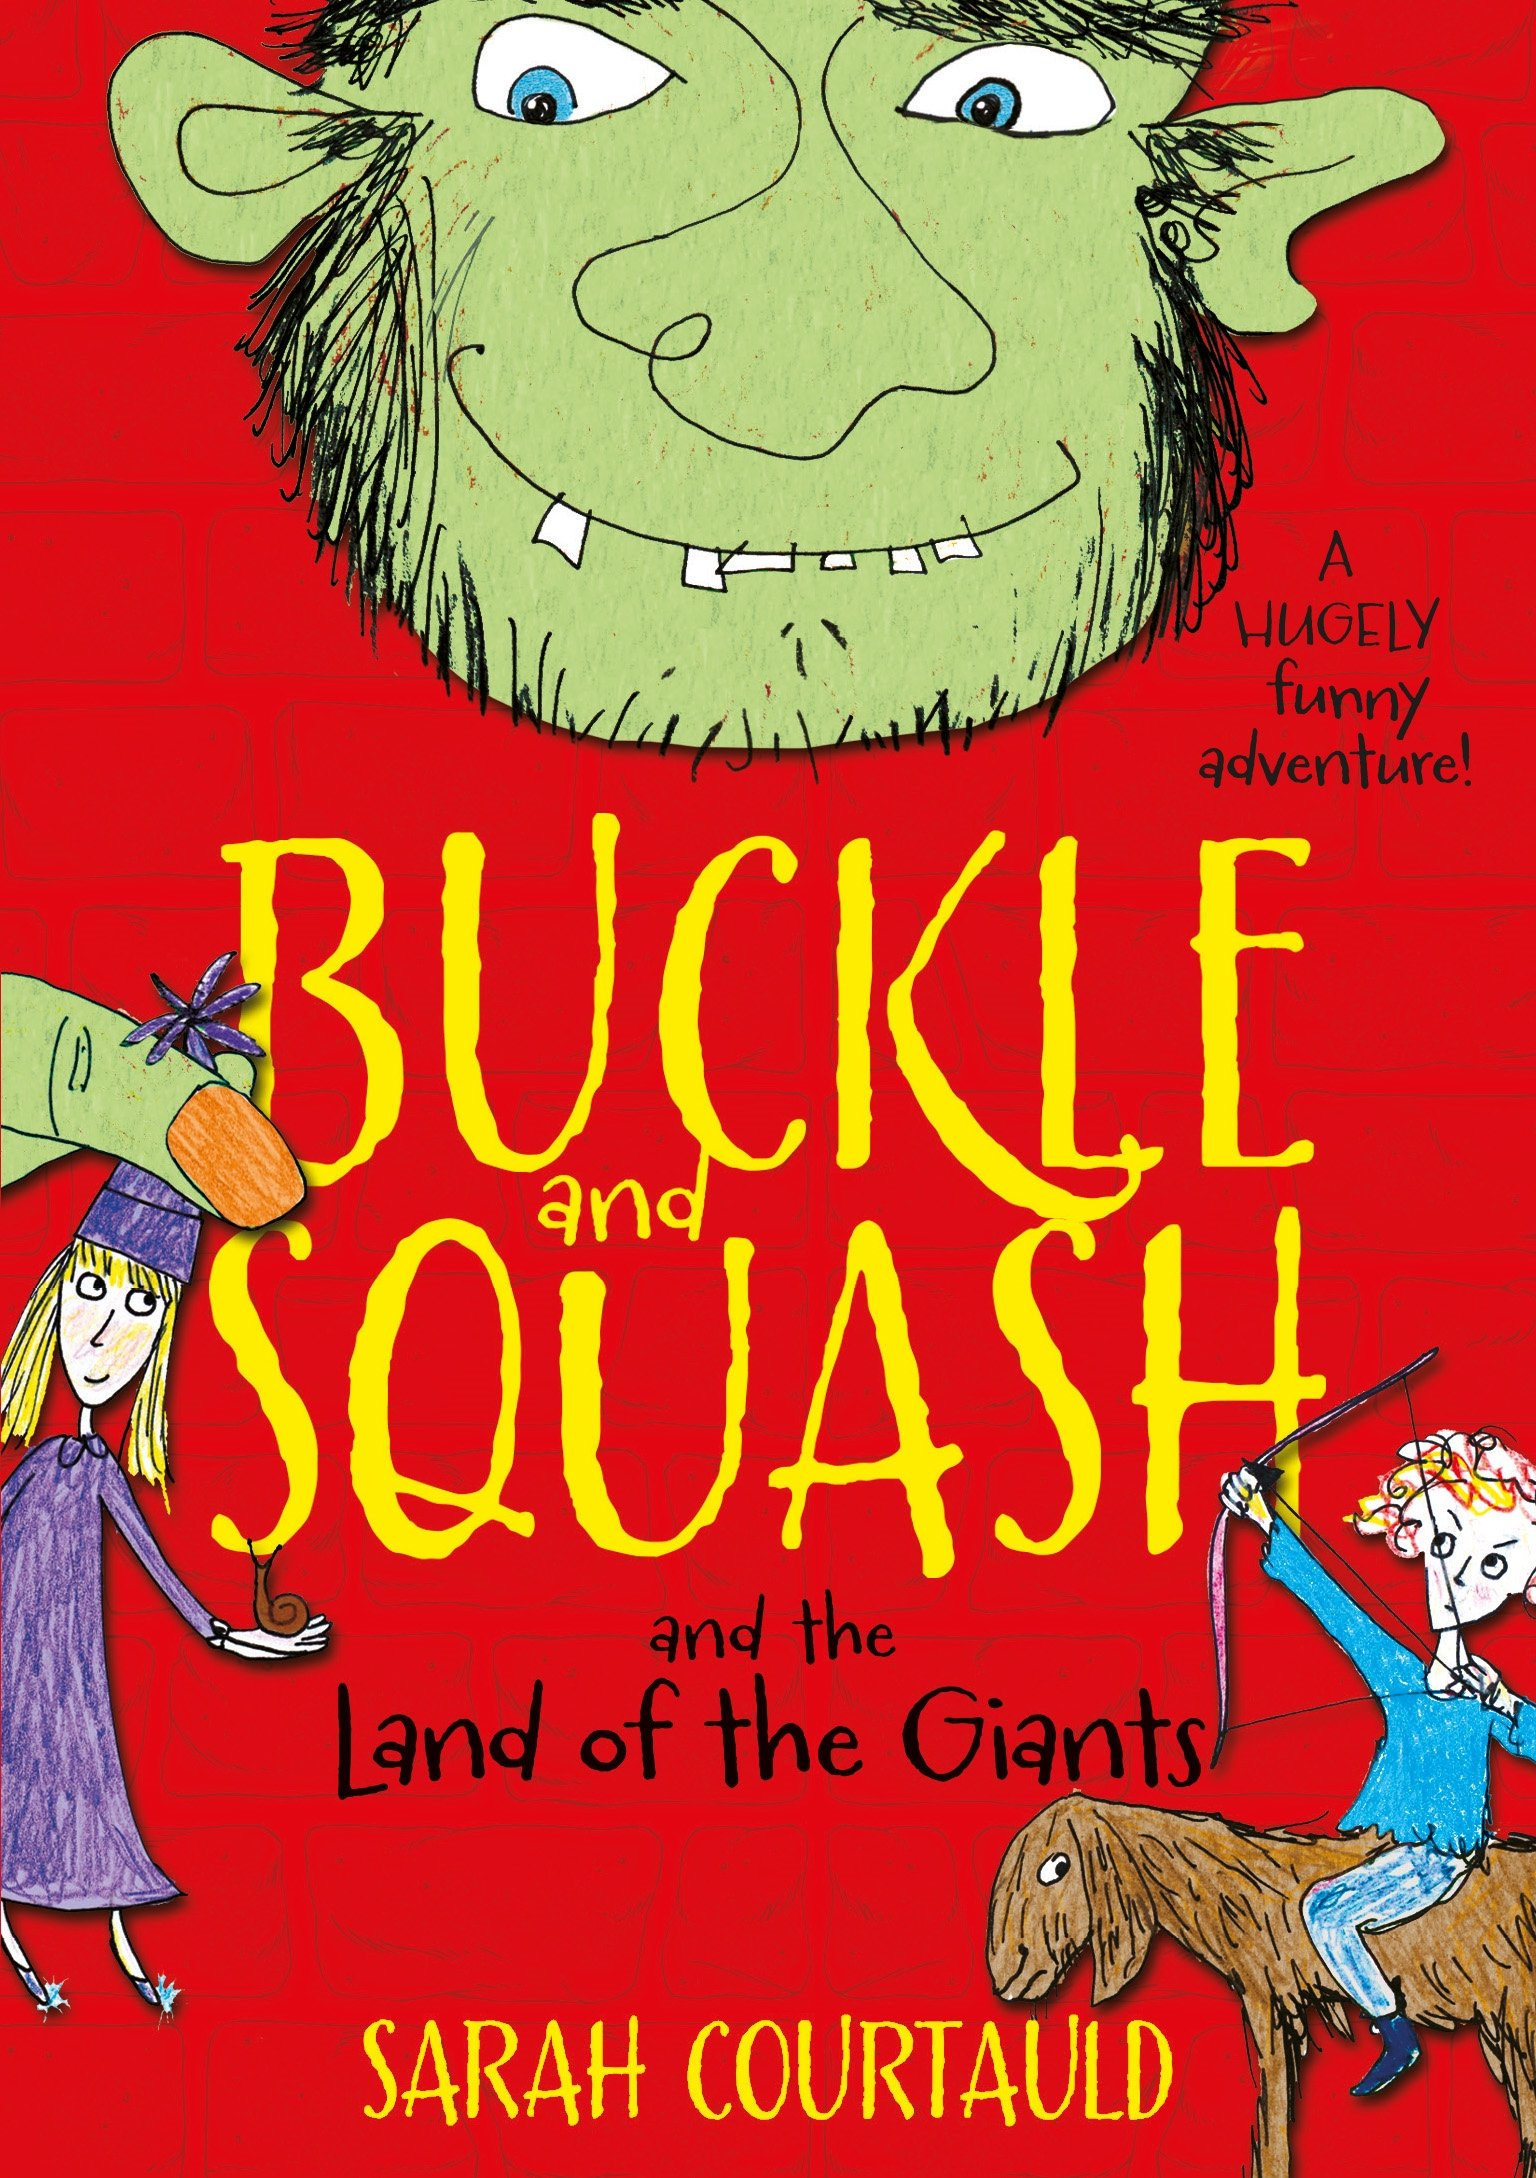 Buckle and Squash and the Land of the Giants chris wormell george and the dragon